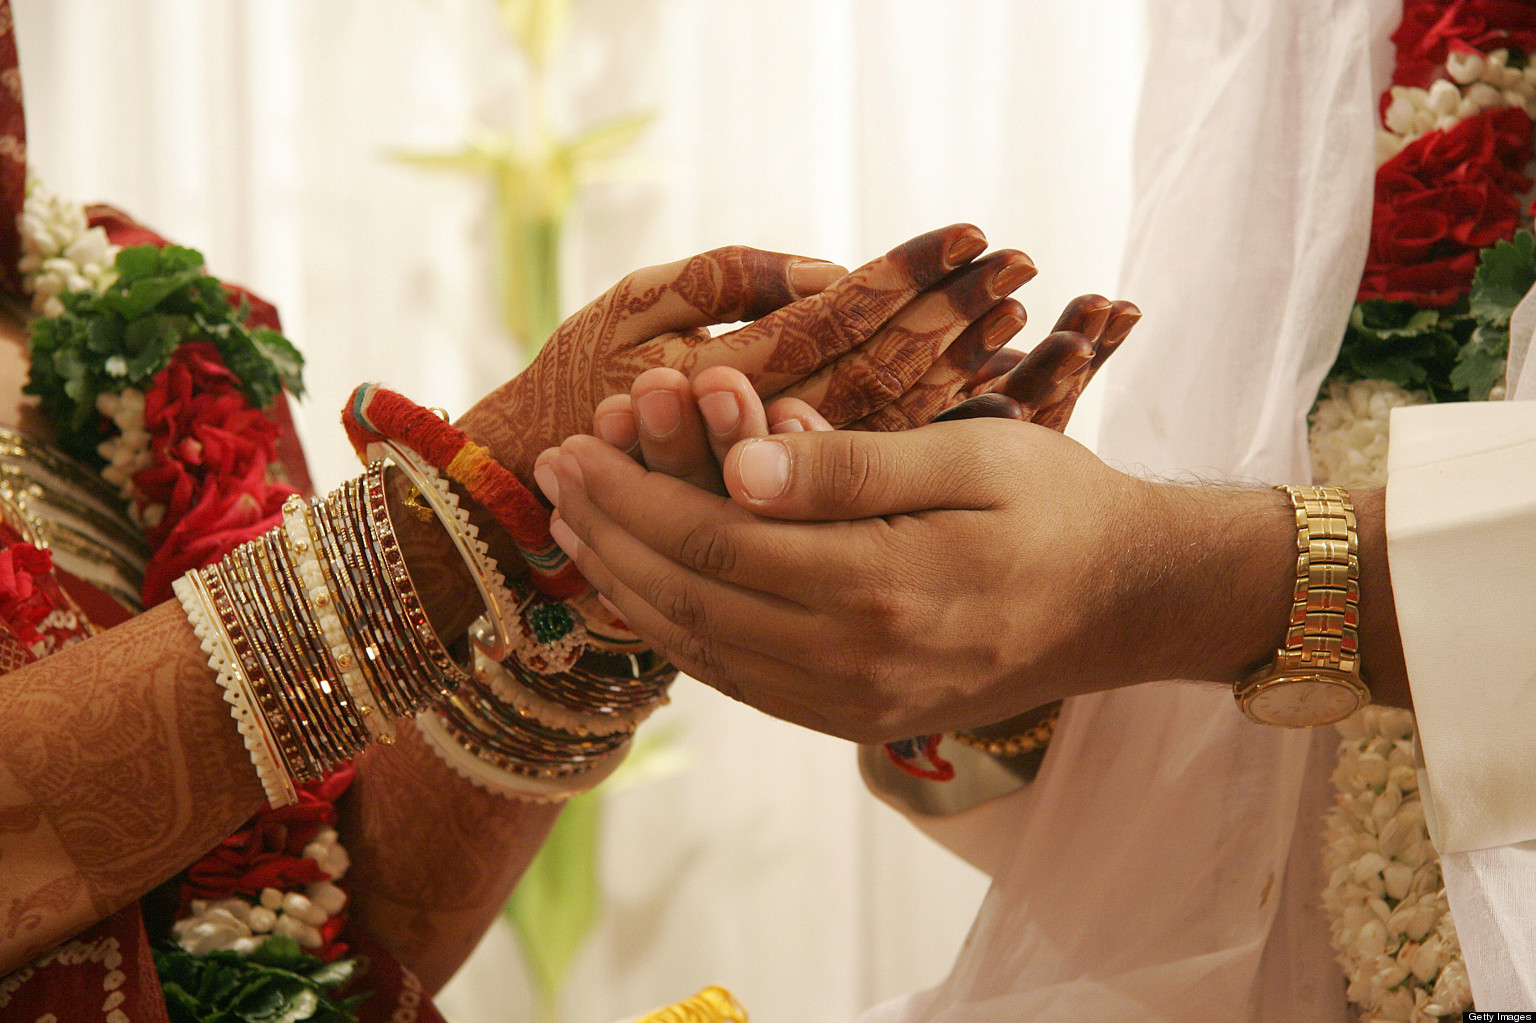 Immigration qualification teen marriage